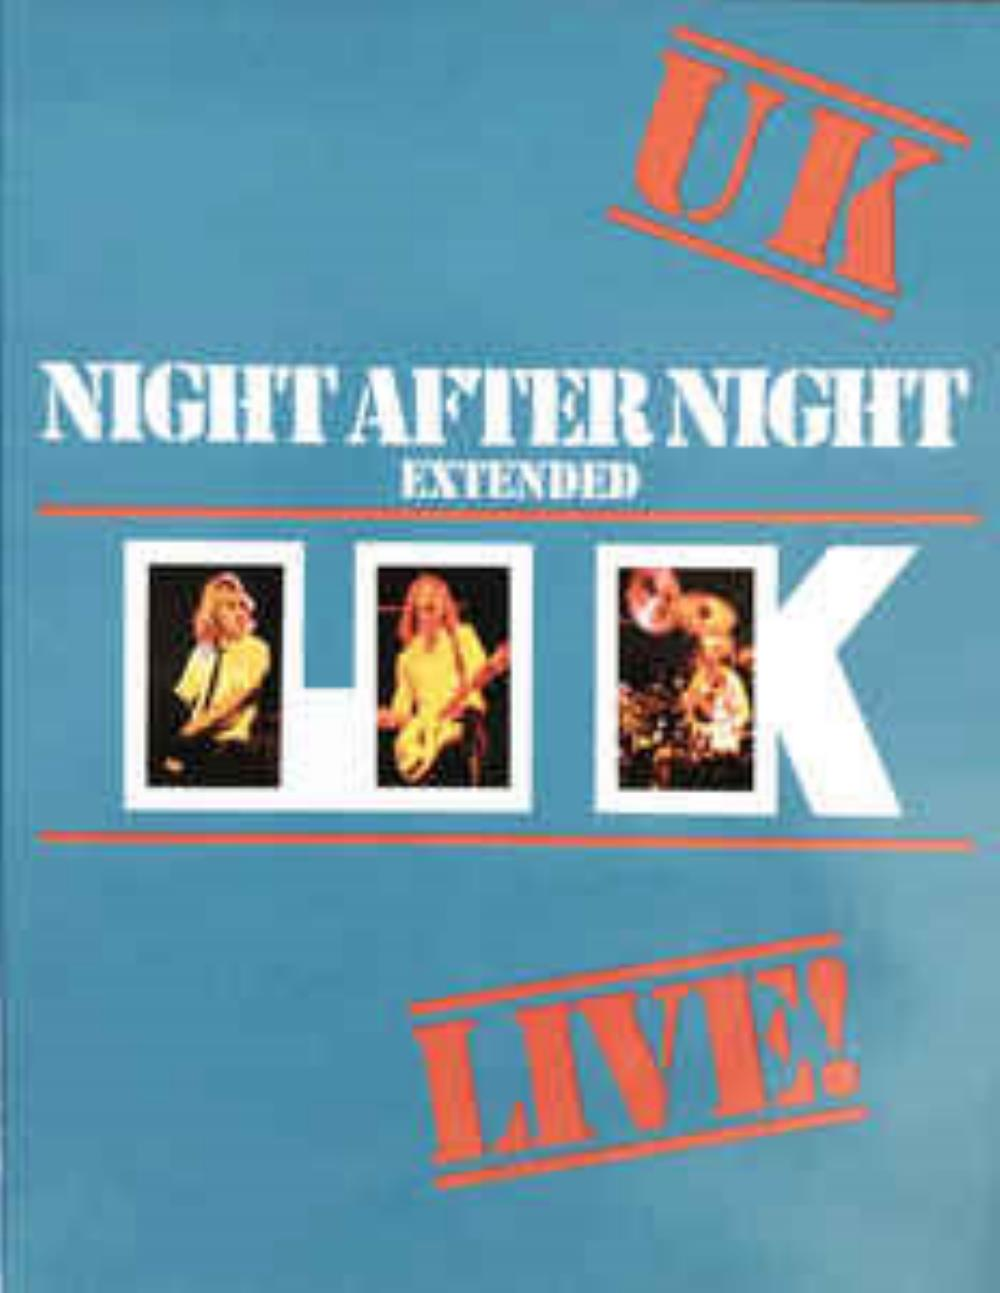 U.k. - Night After Night Extended CD (album) cover